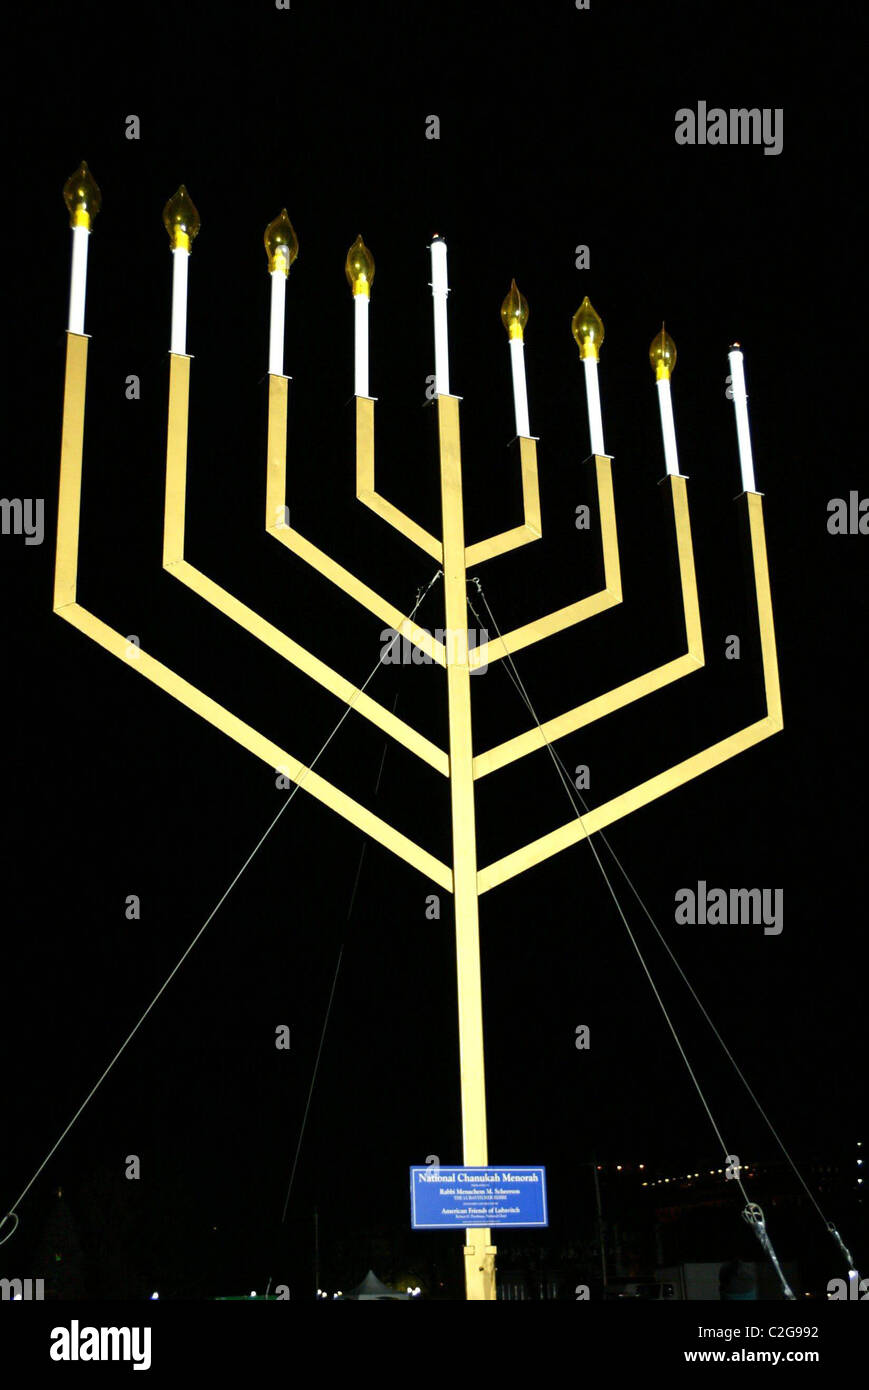 the menorah national hanukkah menorah lighting ceremony at the stock rh alamy com Menorah Drawing Diagram of the Tabernacle in the Bible